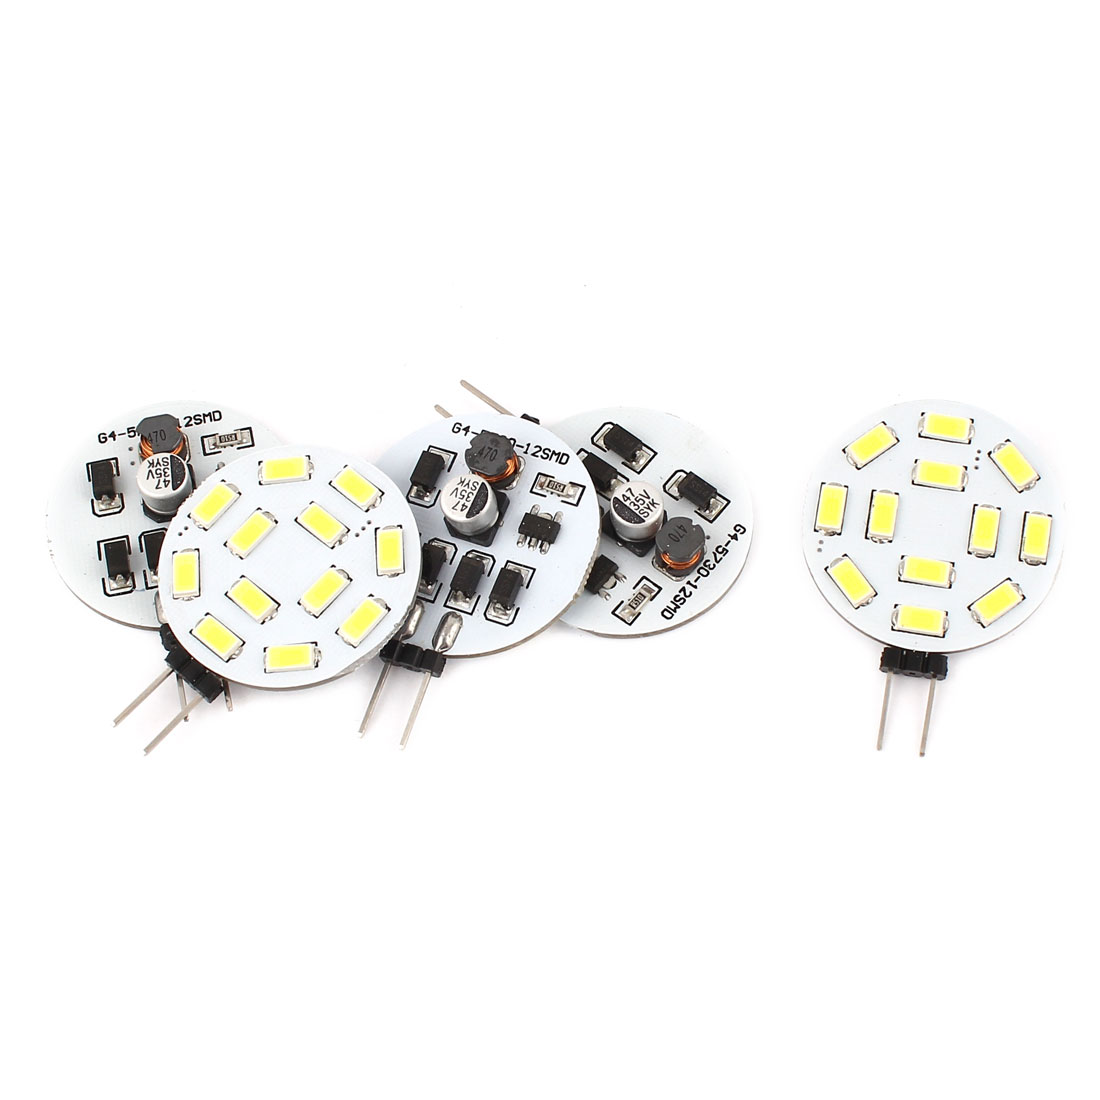 5pcs 120 Degree G4 5730 SMD 12 LED White Light Lamp Car Spot Nonpolarity